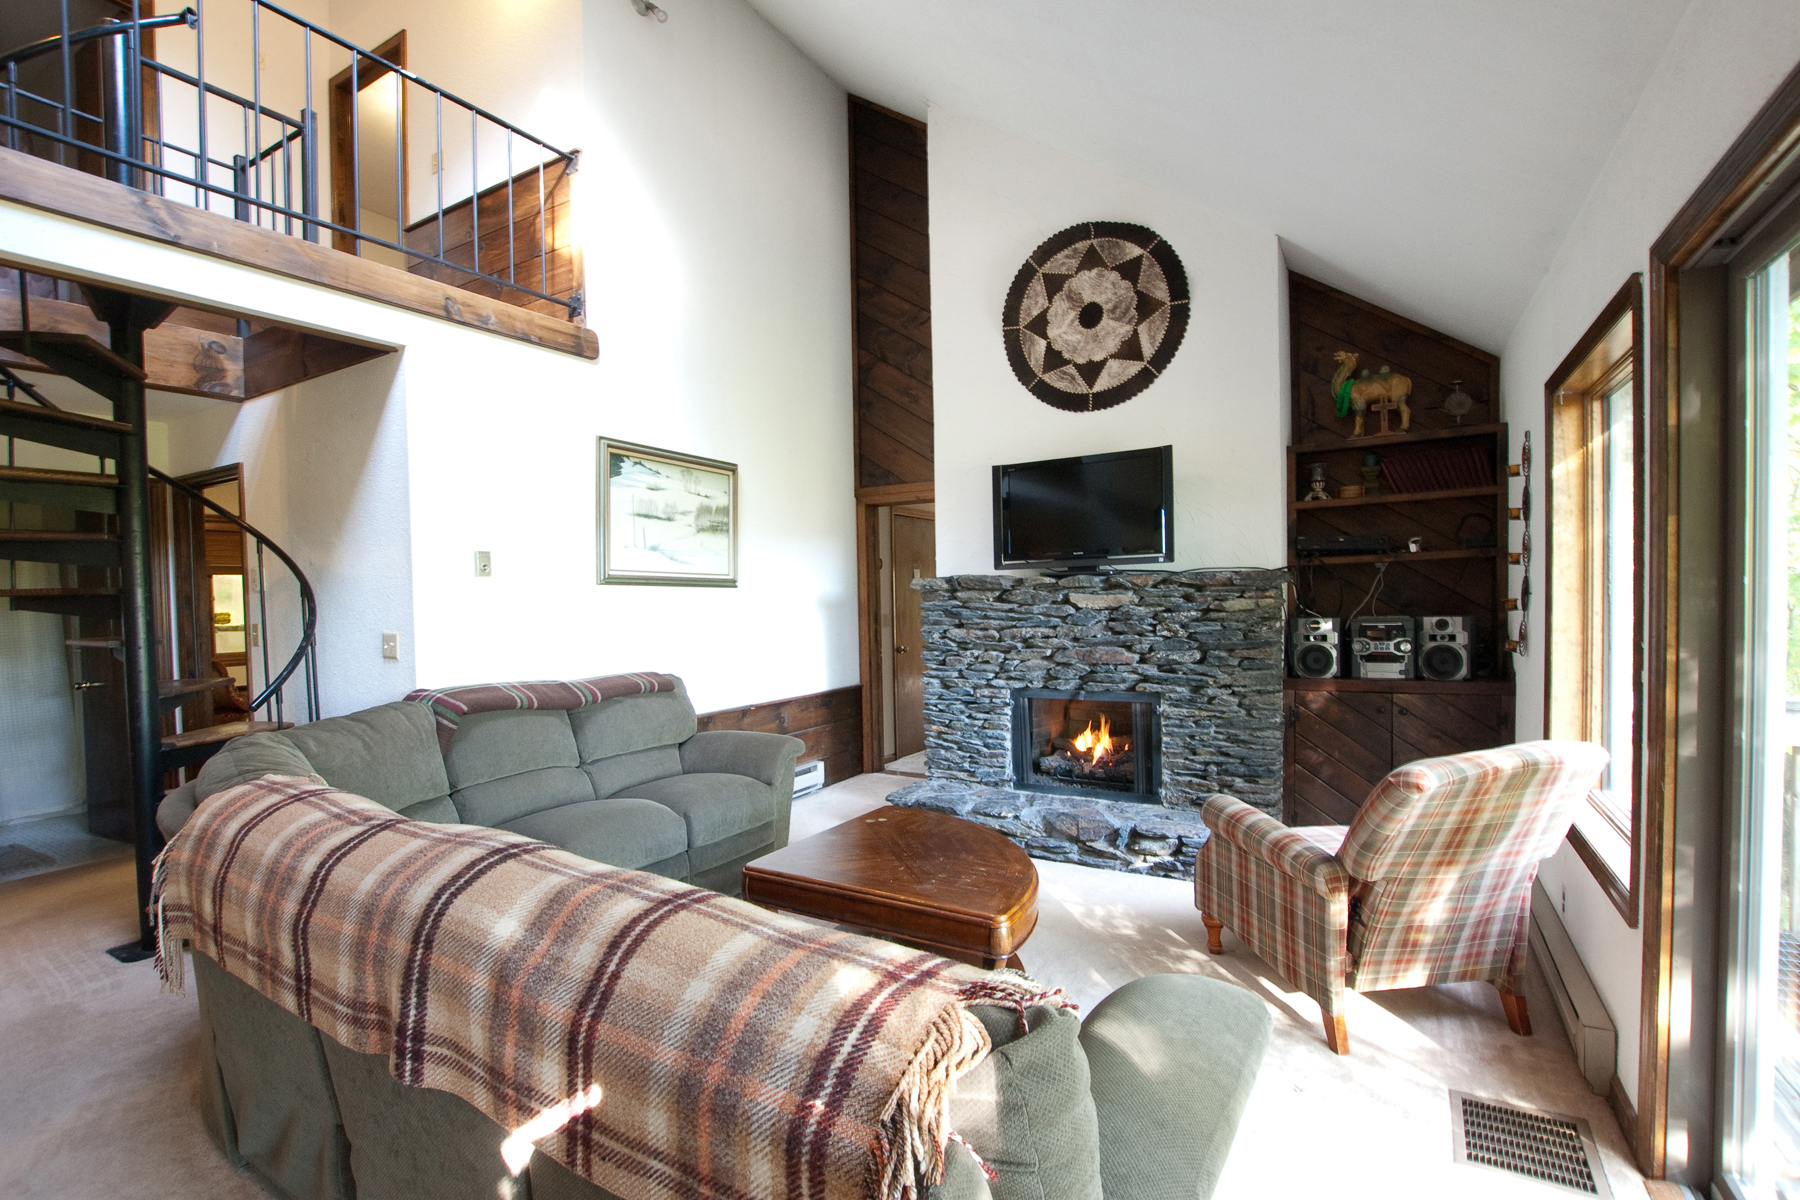 Single Family Homes for Sale at Beautiful Home with Hot Tub Room 1992 East Mountain Rd Killington, Vermont 05751 United States